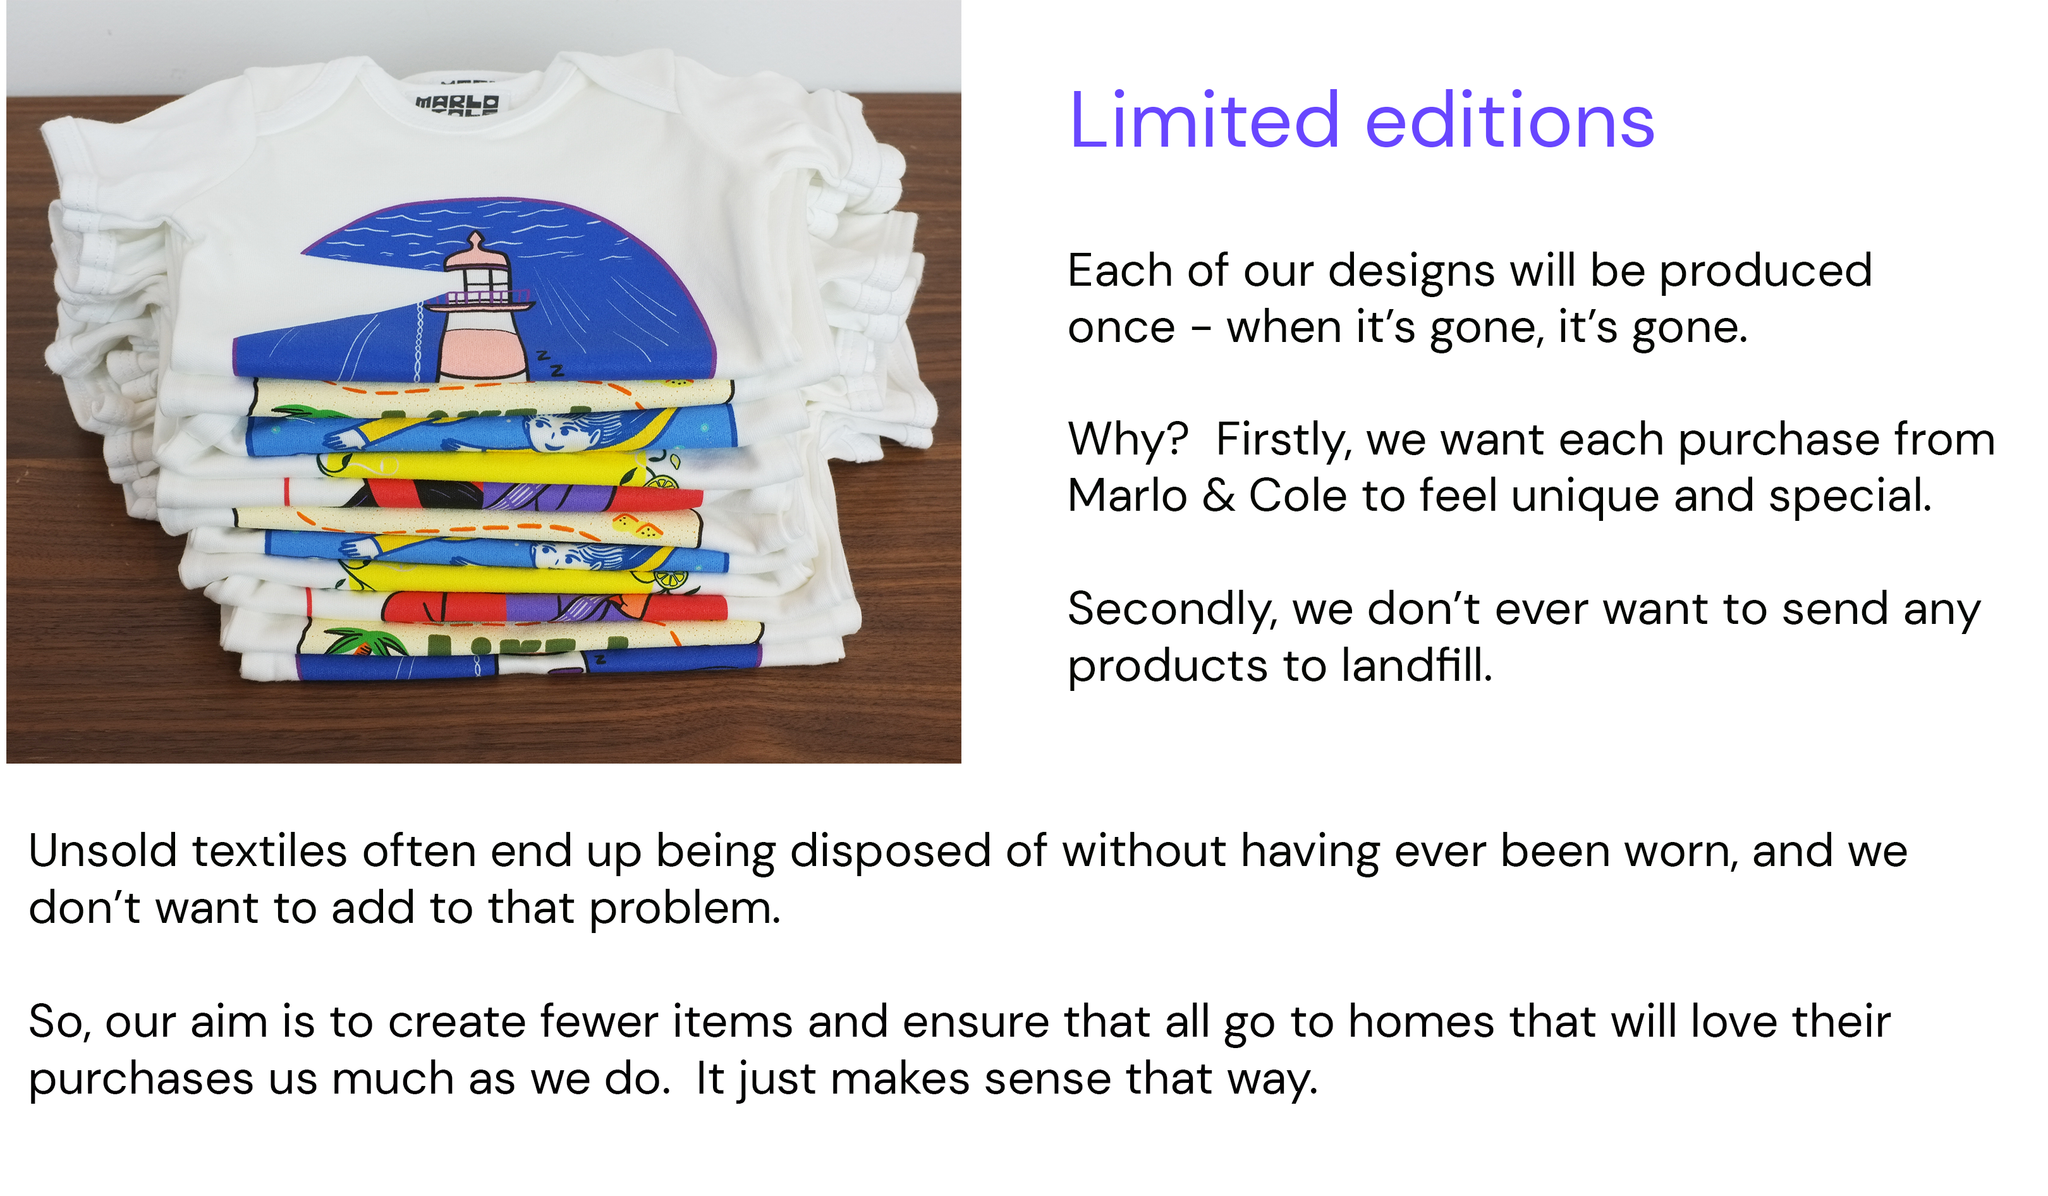 Limited editions.  Each of our designs will be produced once - when it's gone, it's gone.  Why?  Firstly, we want each purchase from Marlo & Cole to feel unique and special.  Secondly, we don't ever want to send any products to landfill.  Unsold textiles often end up being disposed of without having ever been worn, and we don't want to add to that problem. So, our aim is to create fewer items and ensure that all go to homes that will love their purchases as much as we do.  It just makes sense that way.